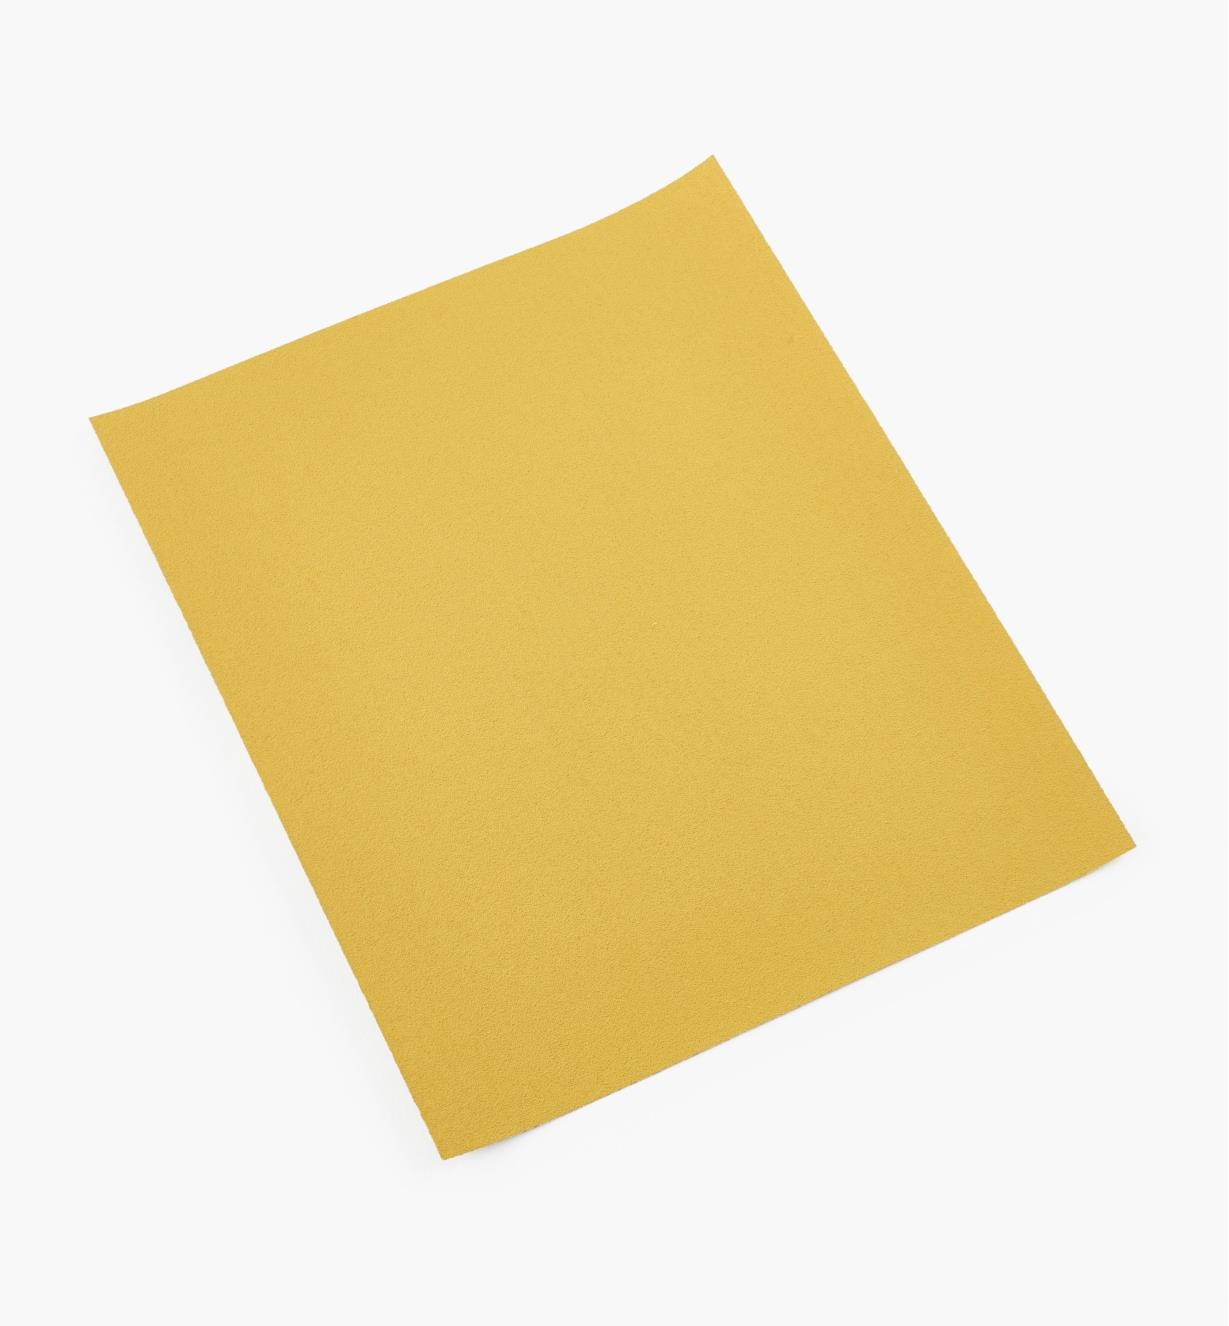 54K8202 - 3M No-Load Sandpaper, 100x